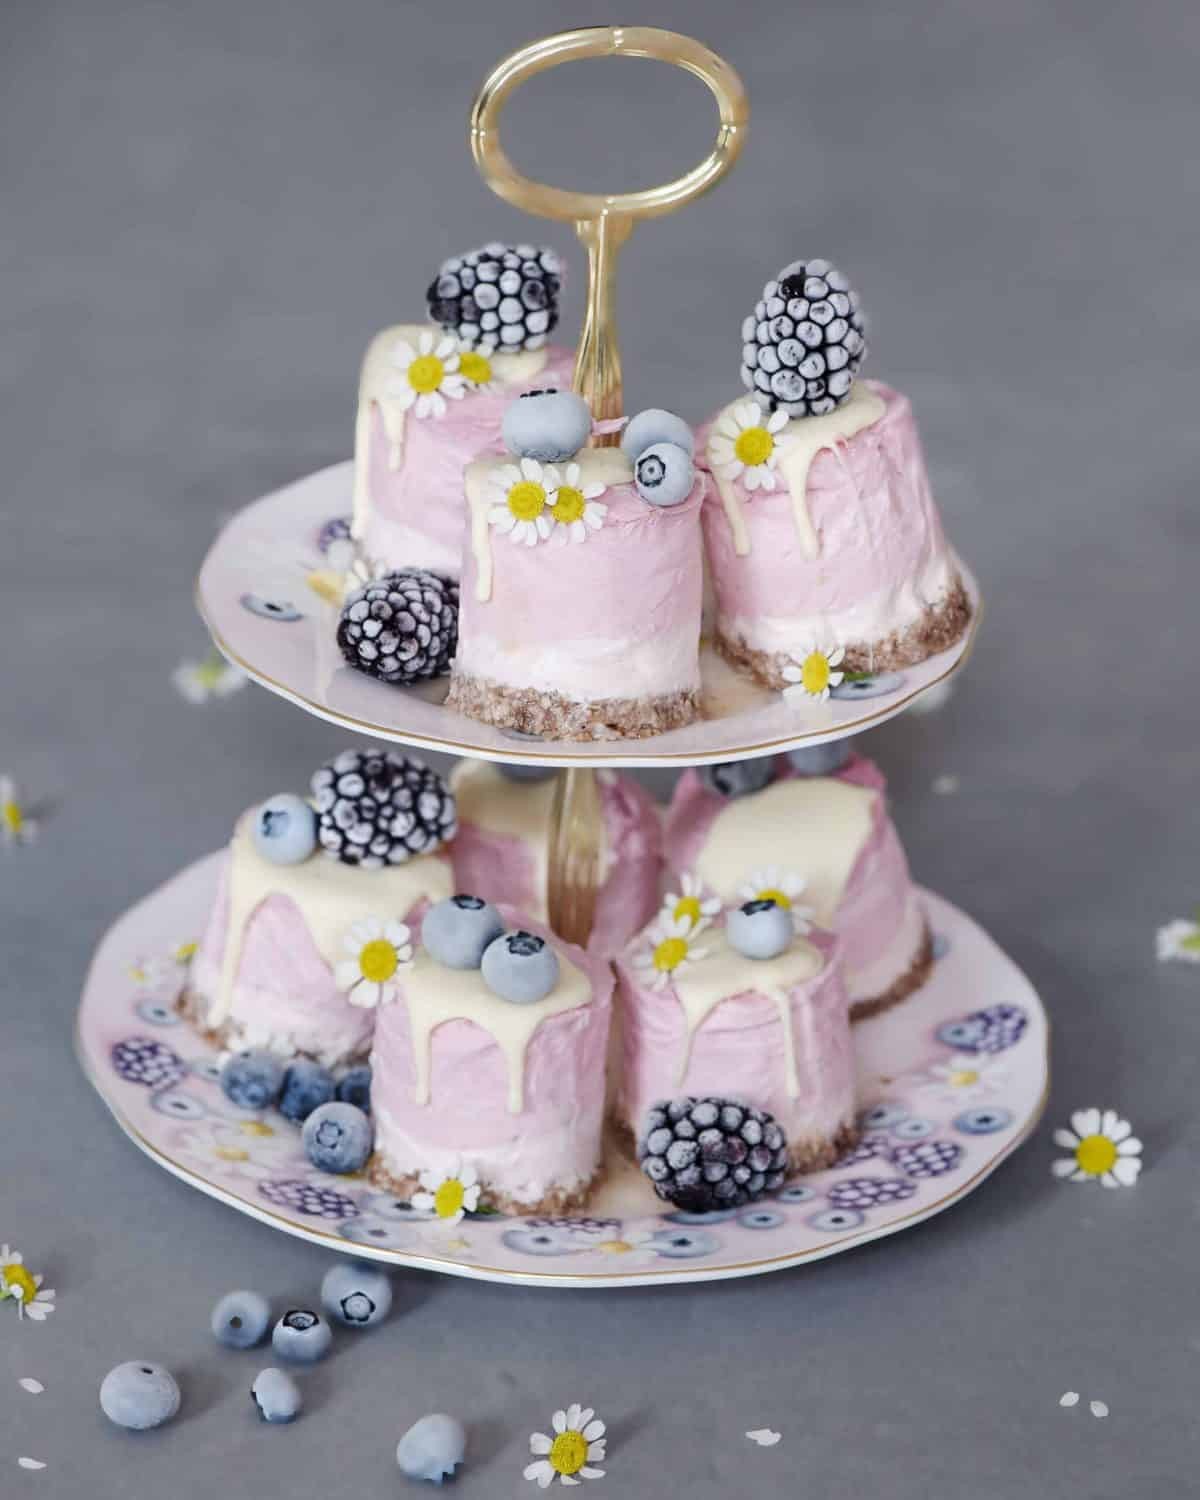 Individual portions of pink cheesecake served with frosted berries on a two-tier plate